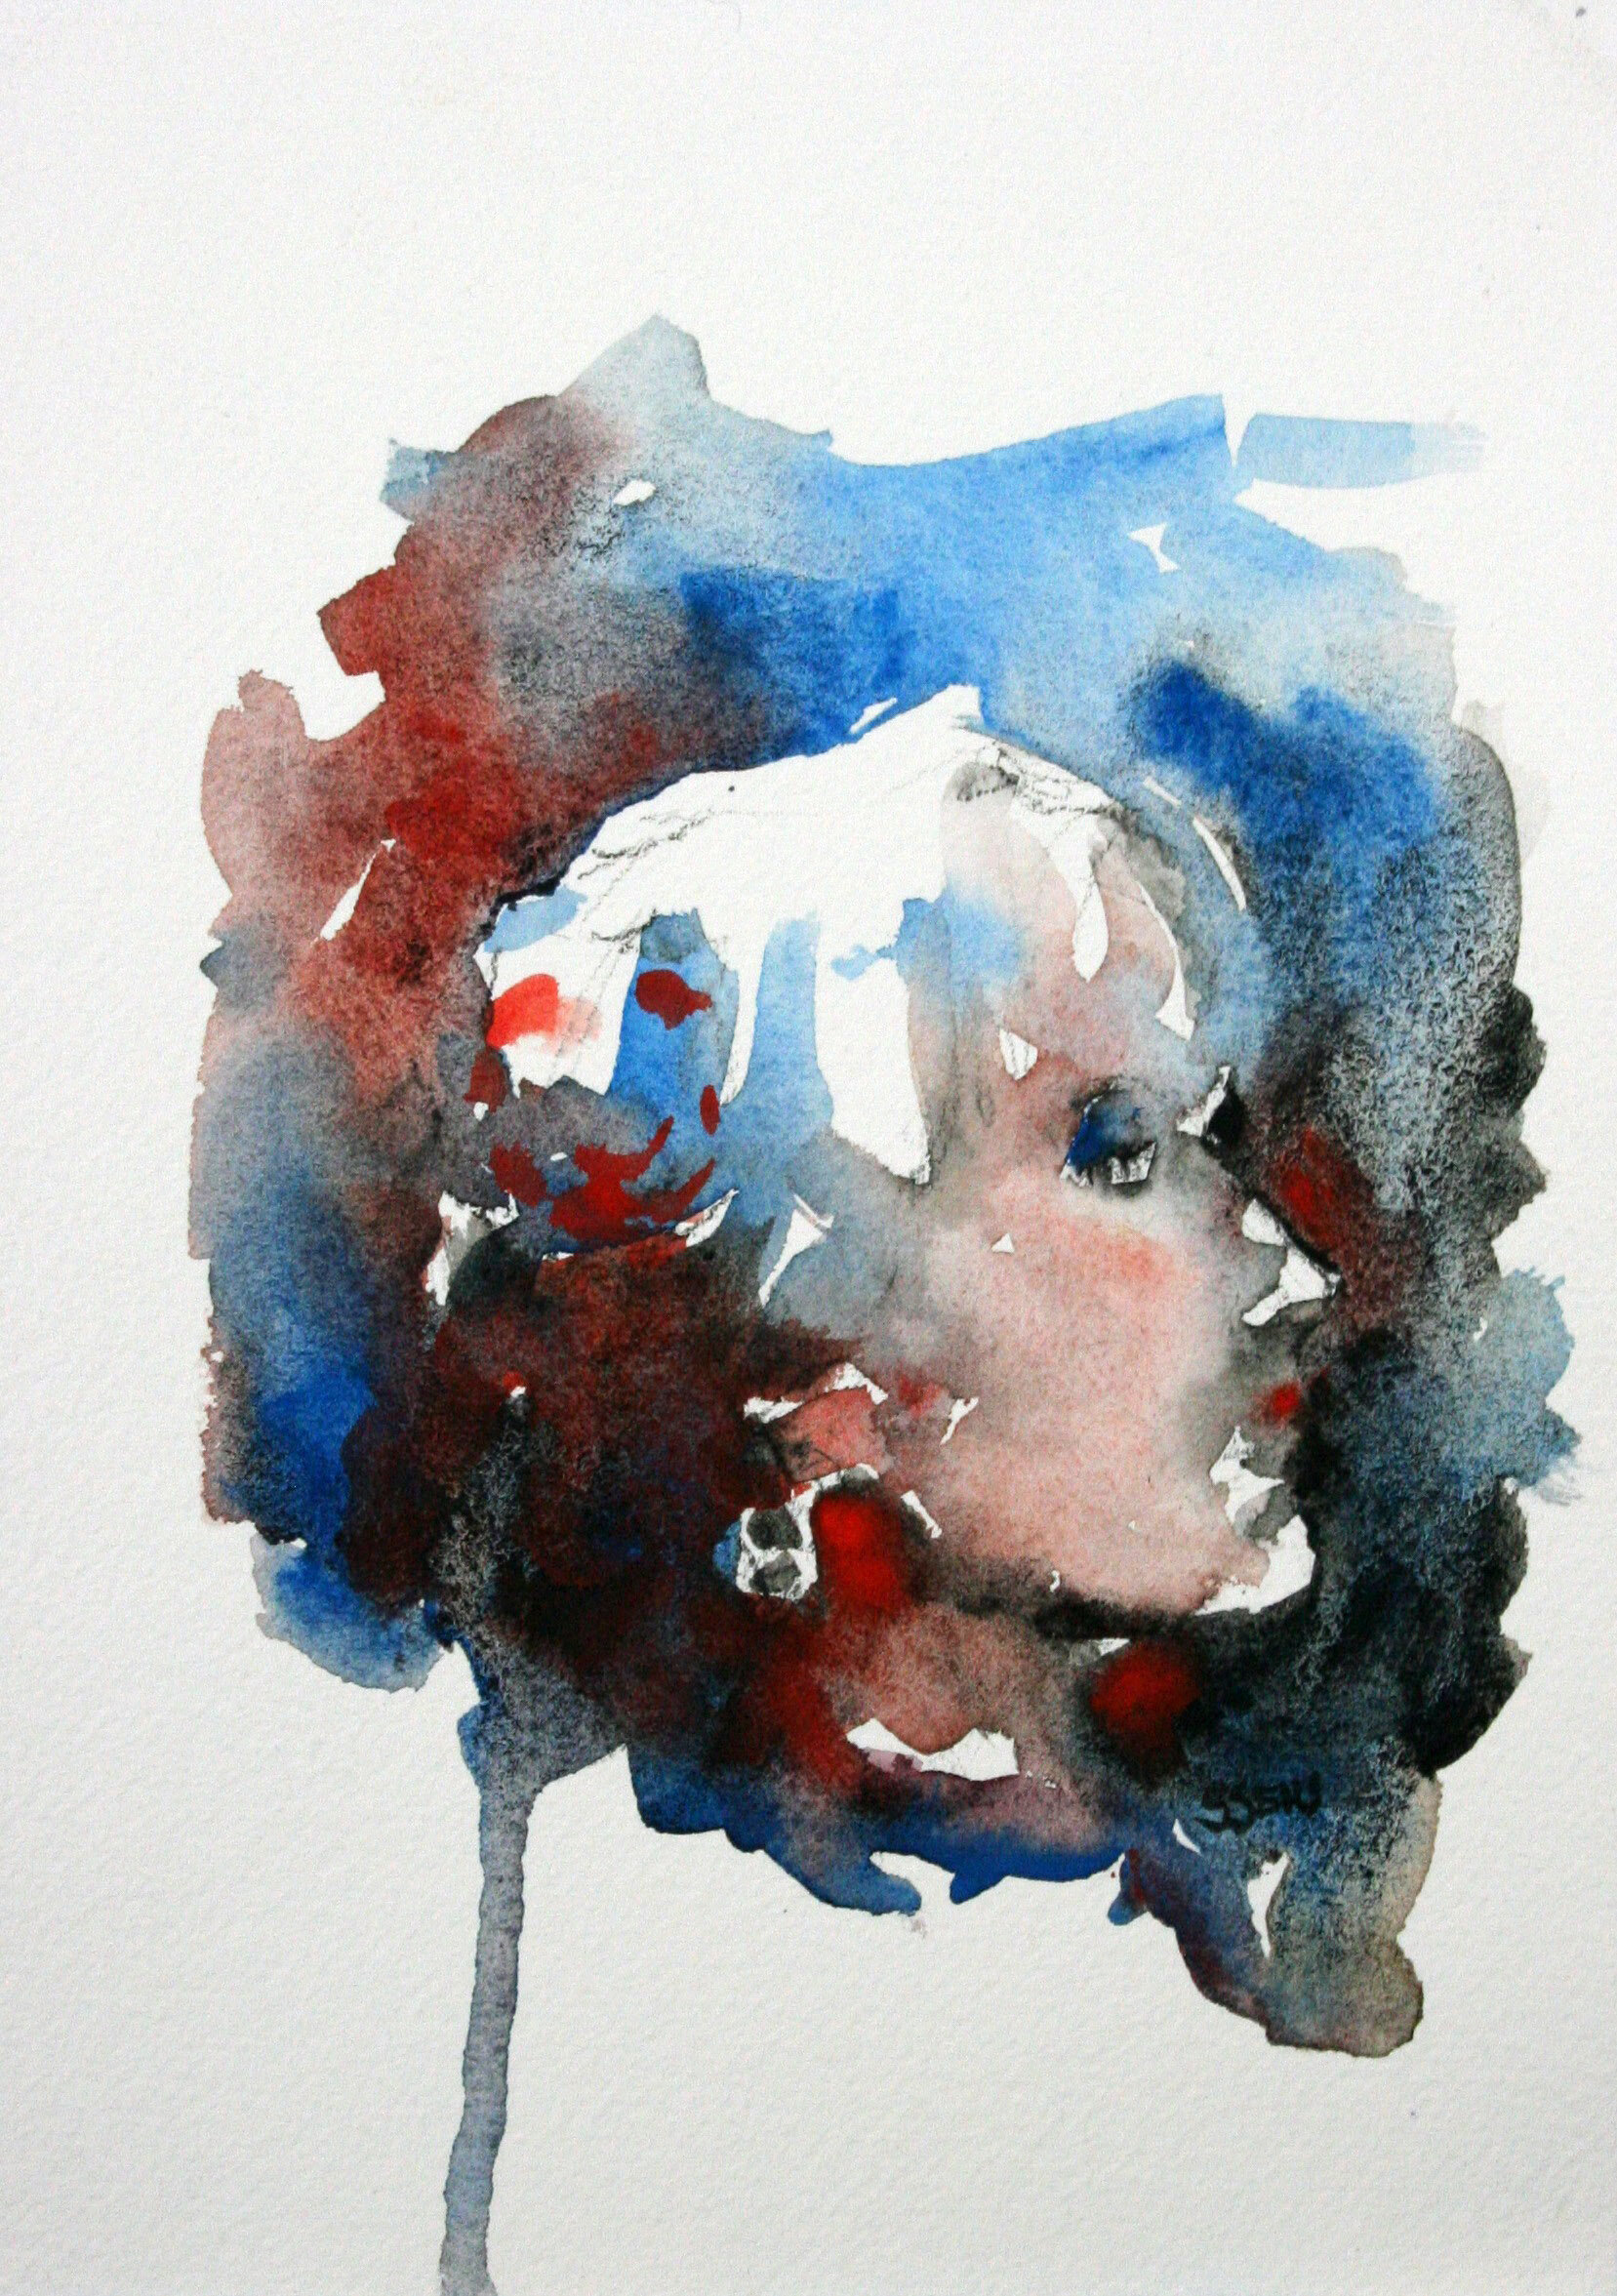 Steve Sens - Watercolors